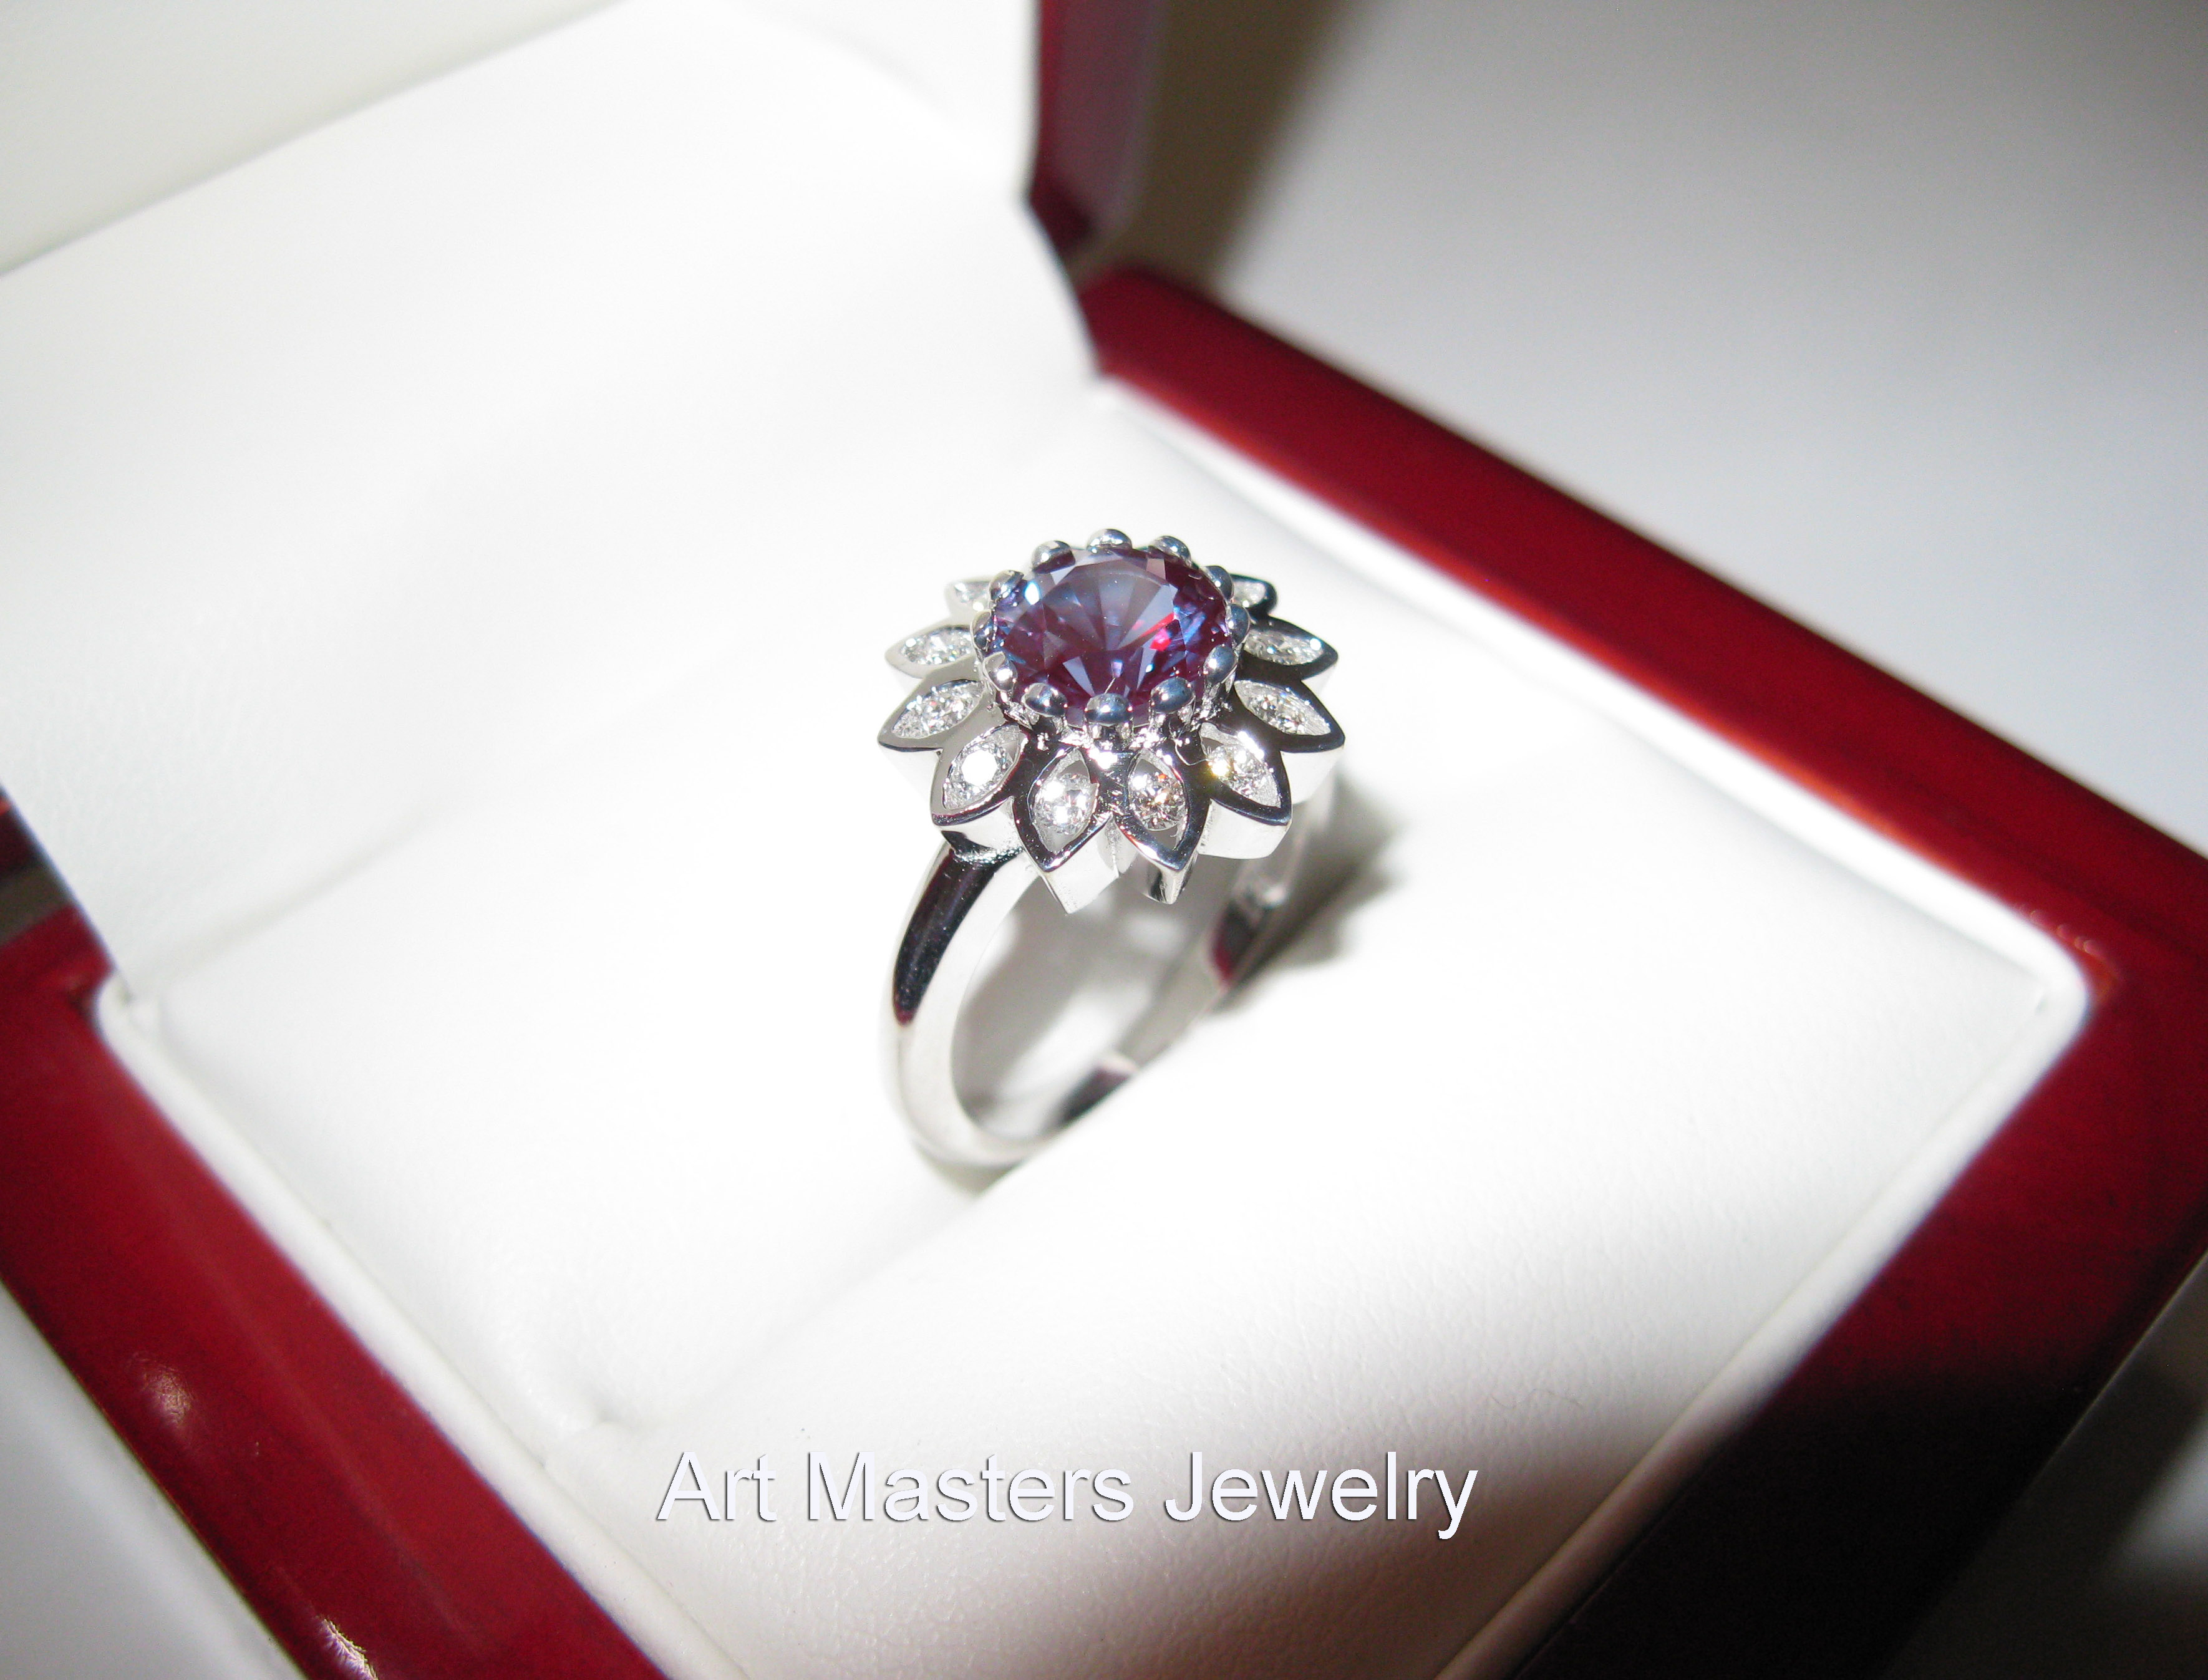 solitaire engagement rings alexandrite wedding band Solitaire Engagement Rings Art Masters Jewelry Engagement and Wedding Jewelry Blog